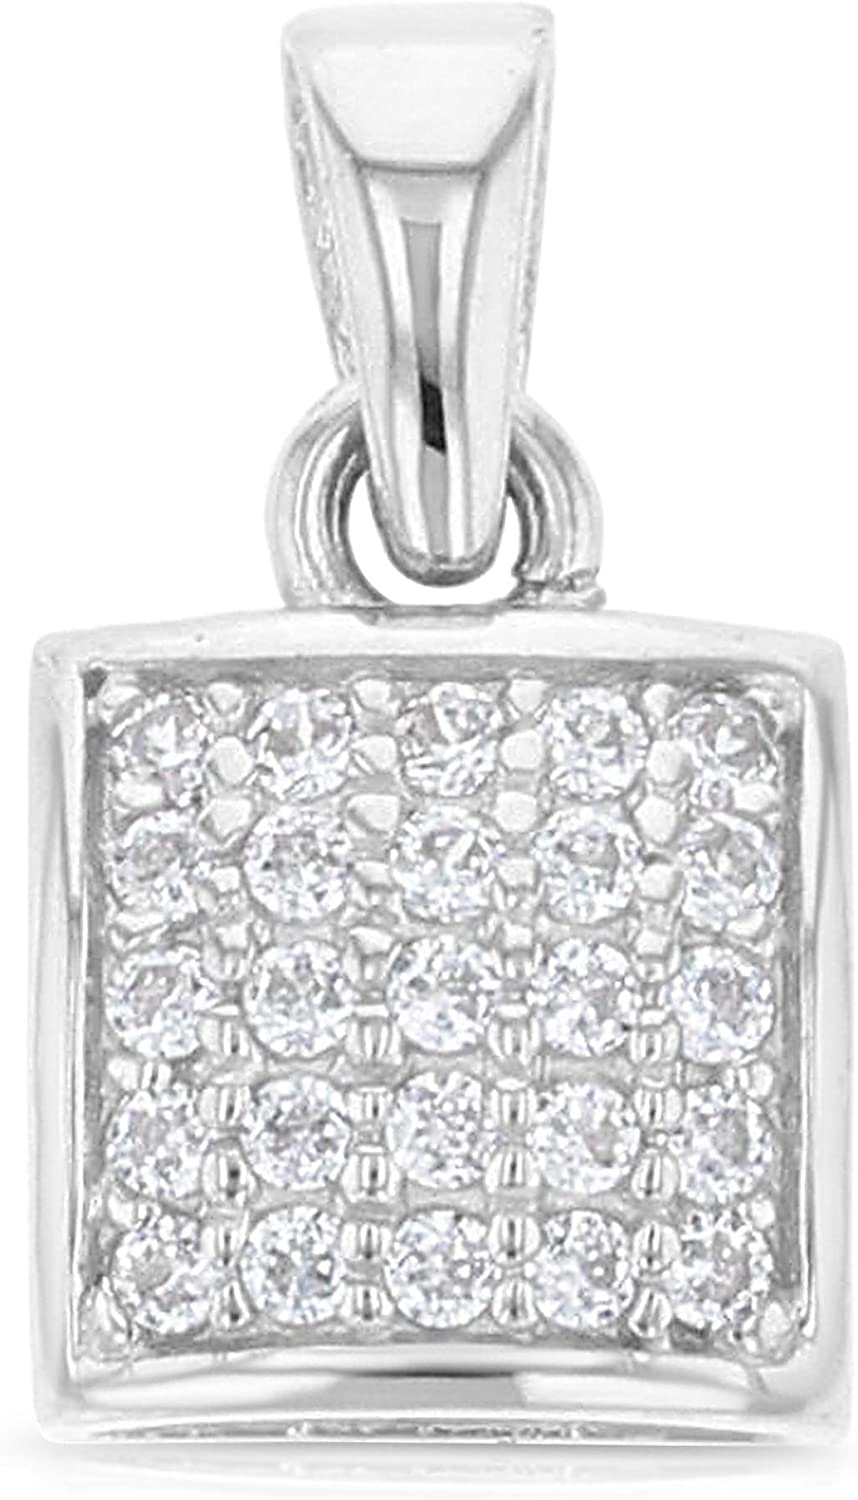 Ioka 14K Yellow Gold OR White Gold 7mm Fancy Rounded Square Cubic Zirconia CZ Charm Pendant For Necklace OR Chain IG-01-100-0688W